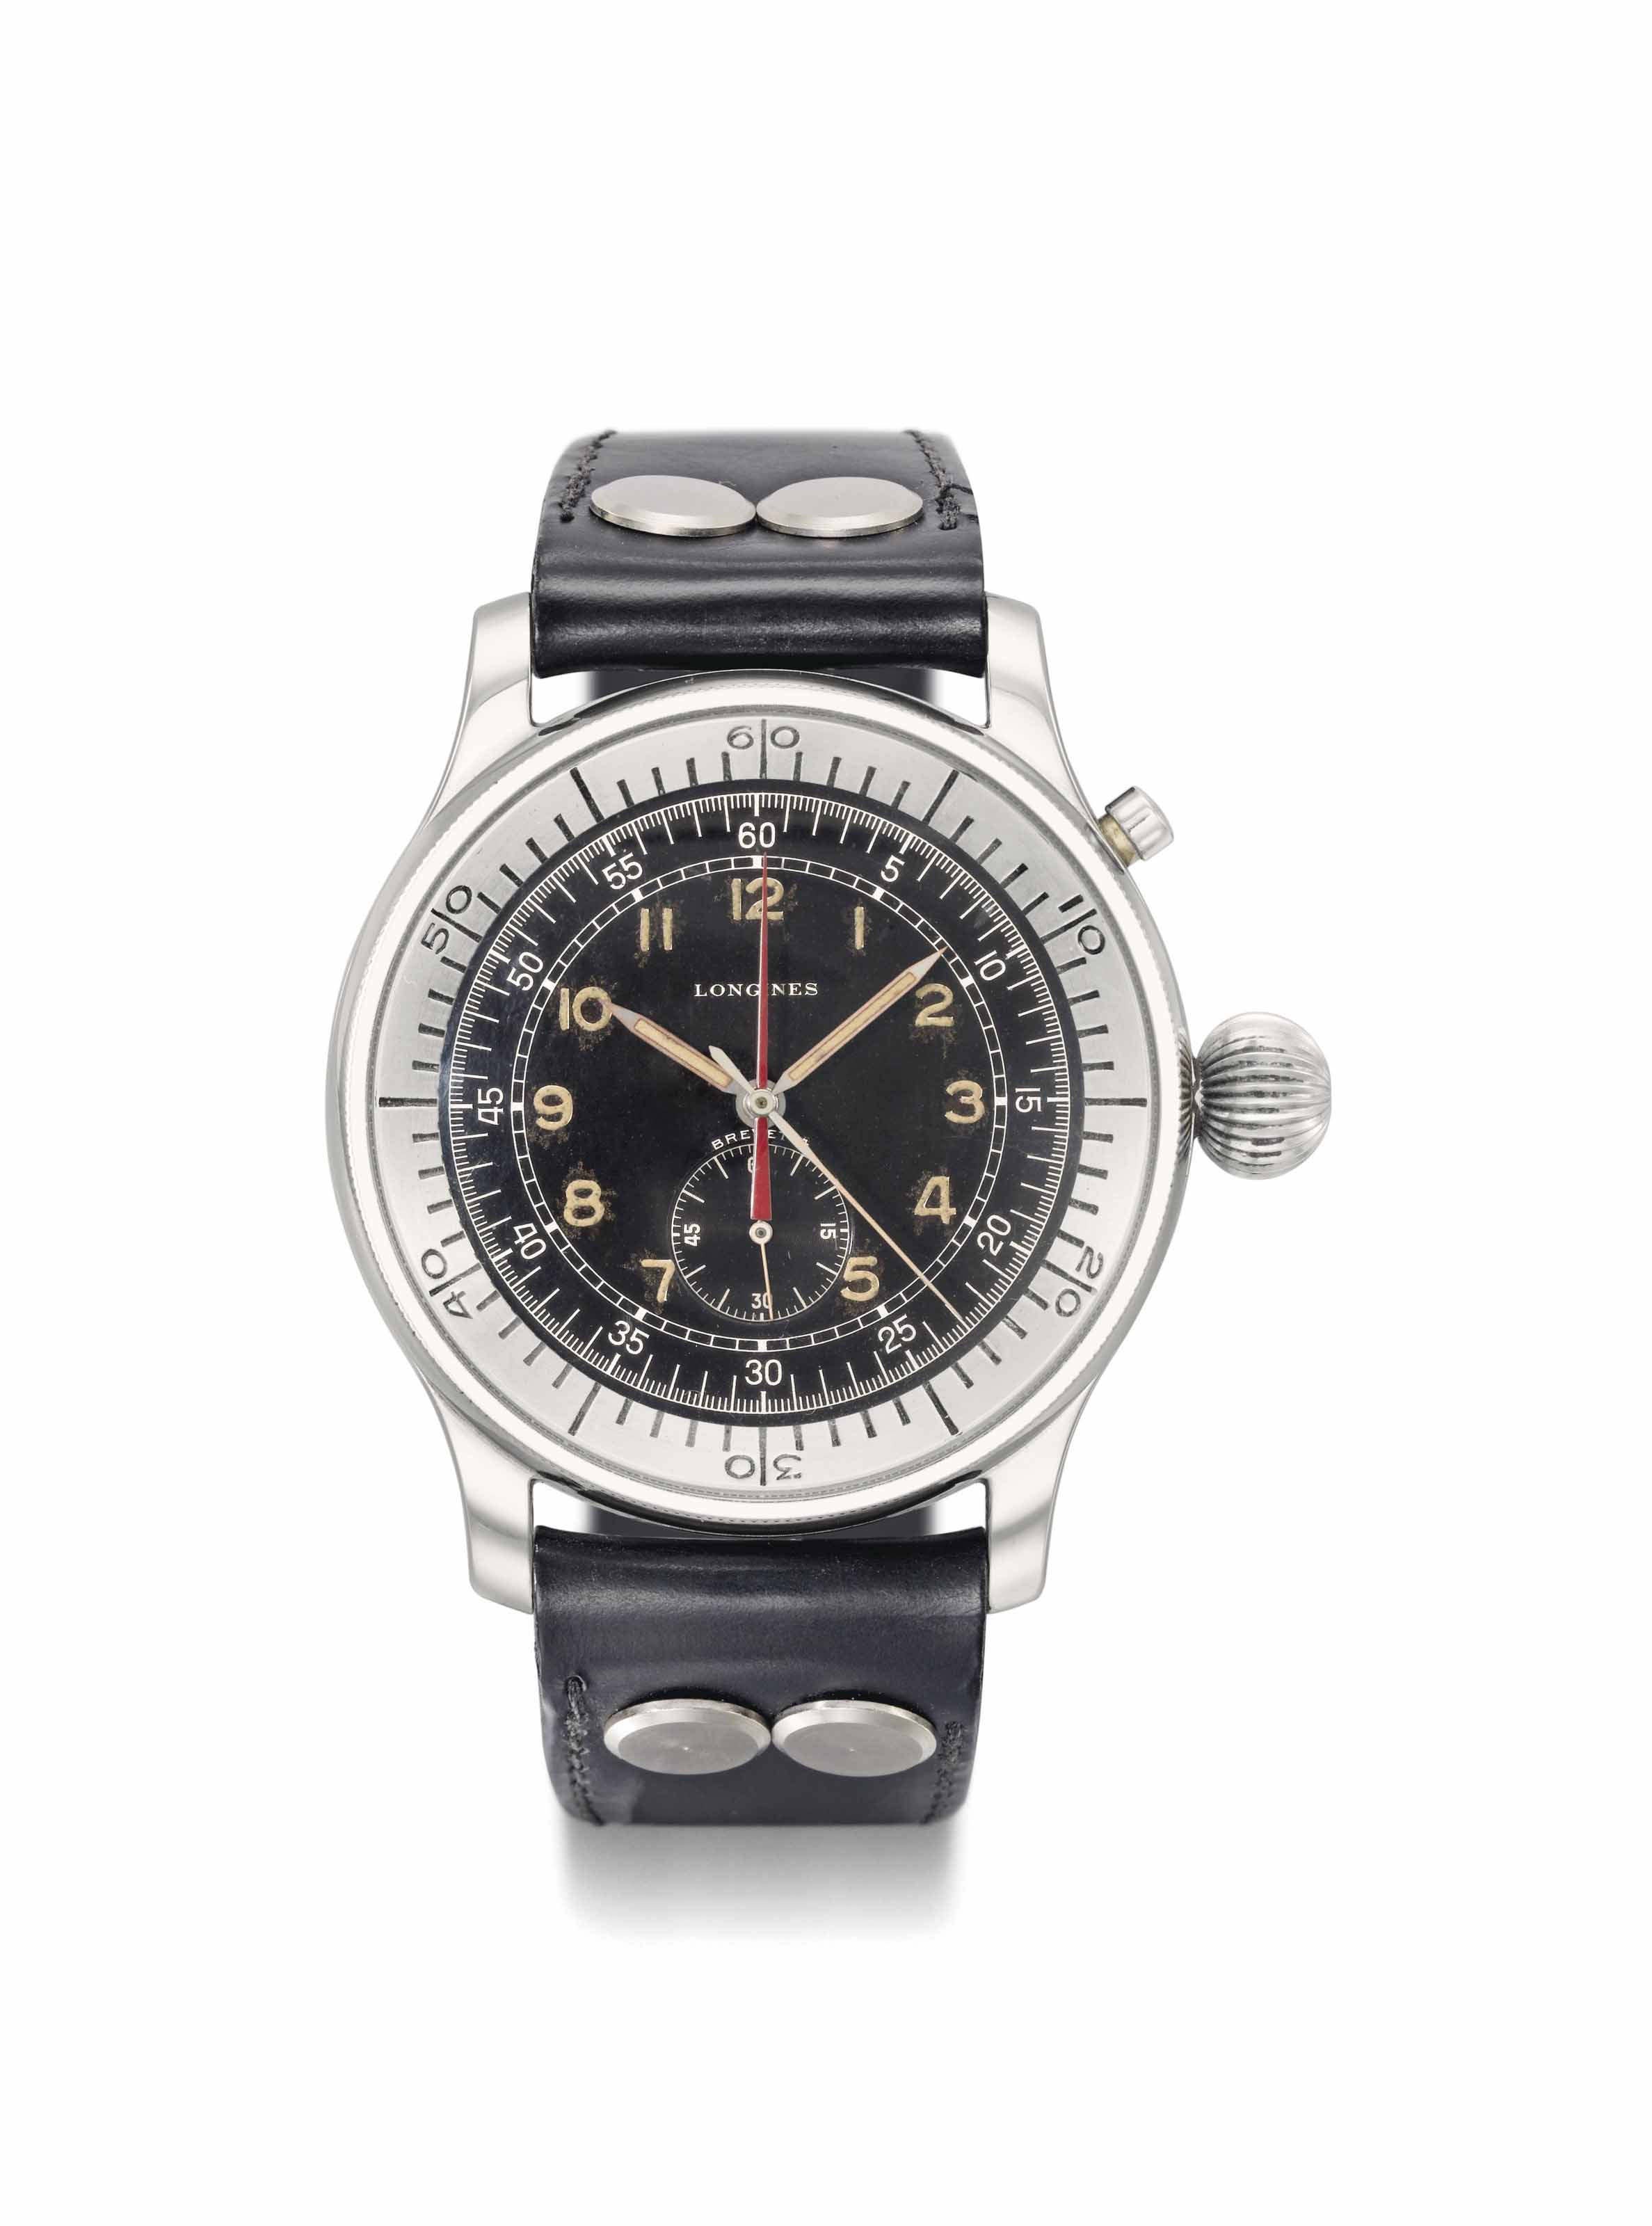 Longines. A rare and unusual, attractive large stainless steel single button flyback aviator's chronograph wristwatch with black military dial and central register